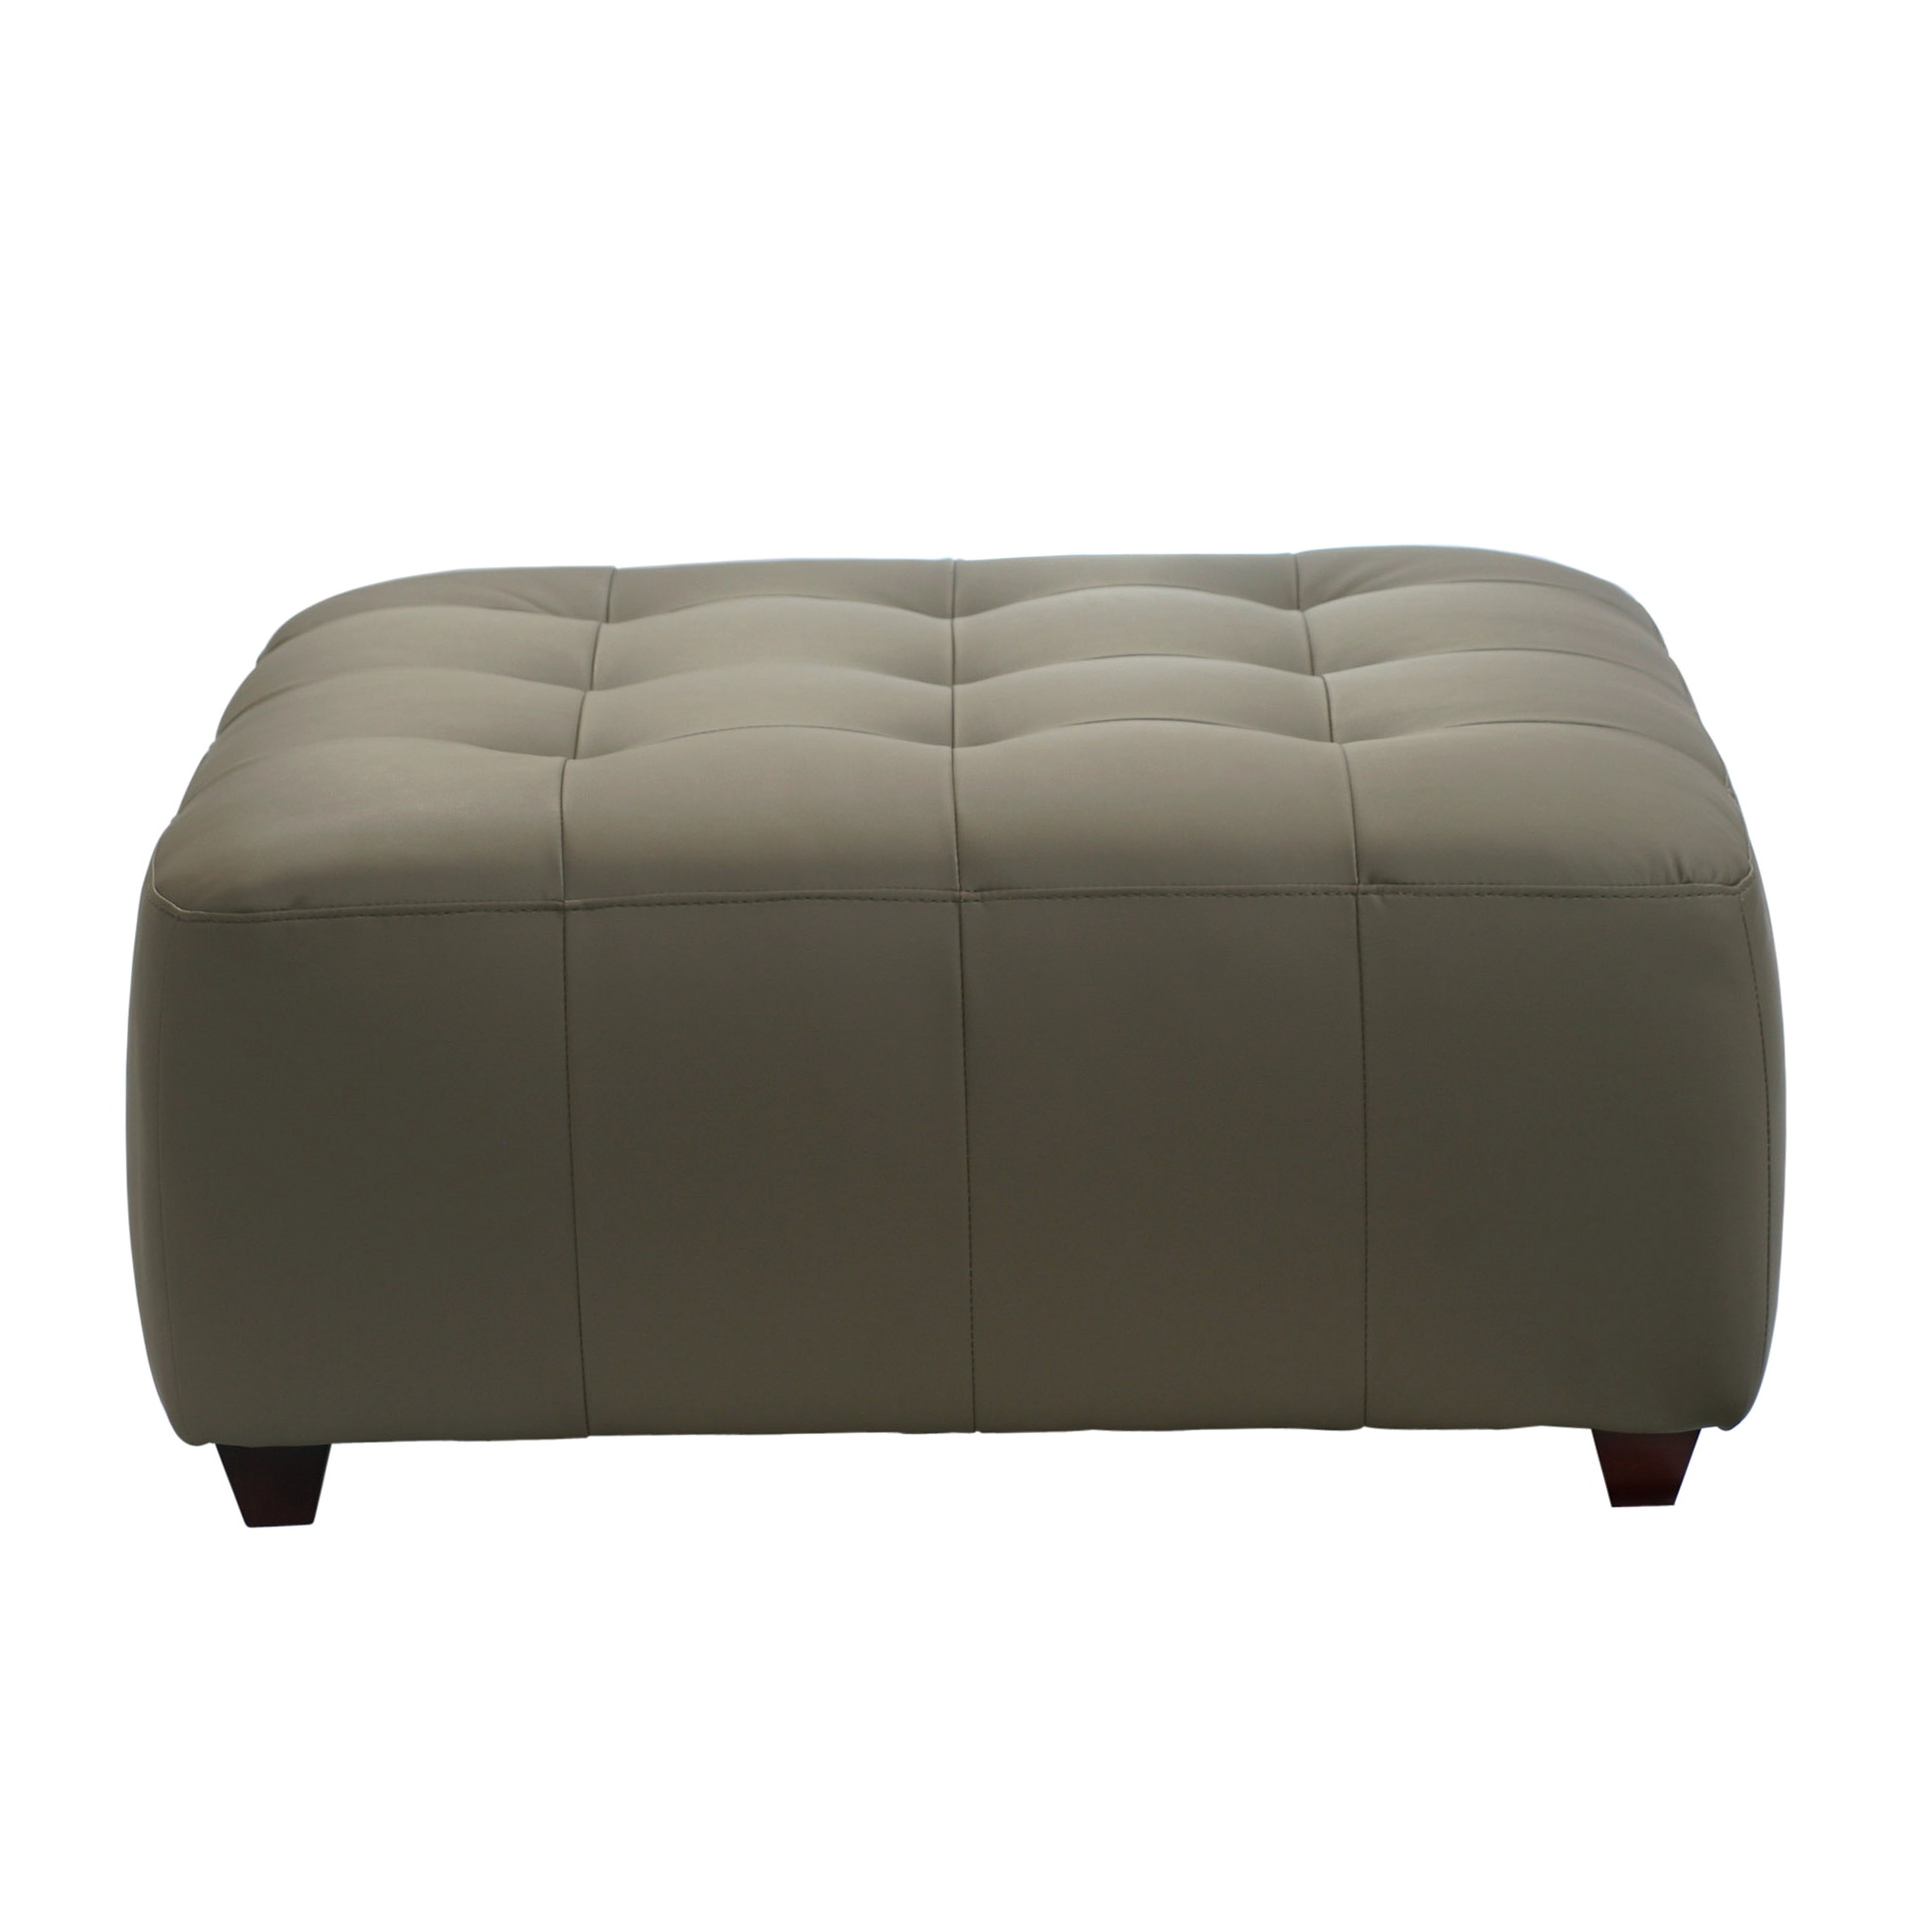 Square Tufted Cocktail Ottoman